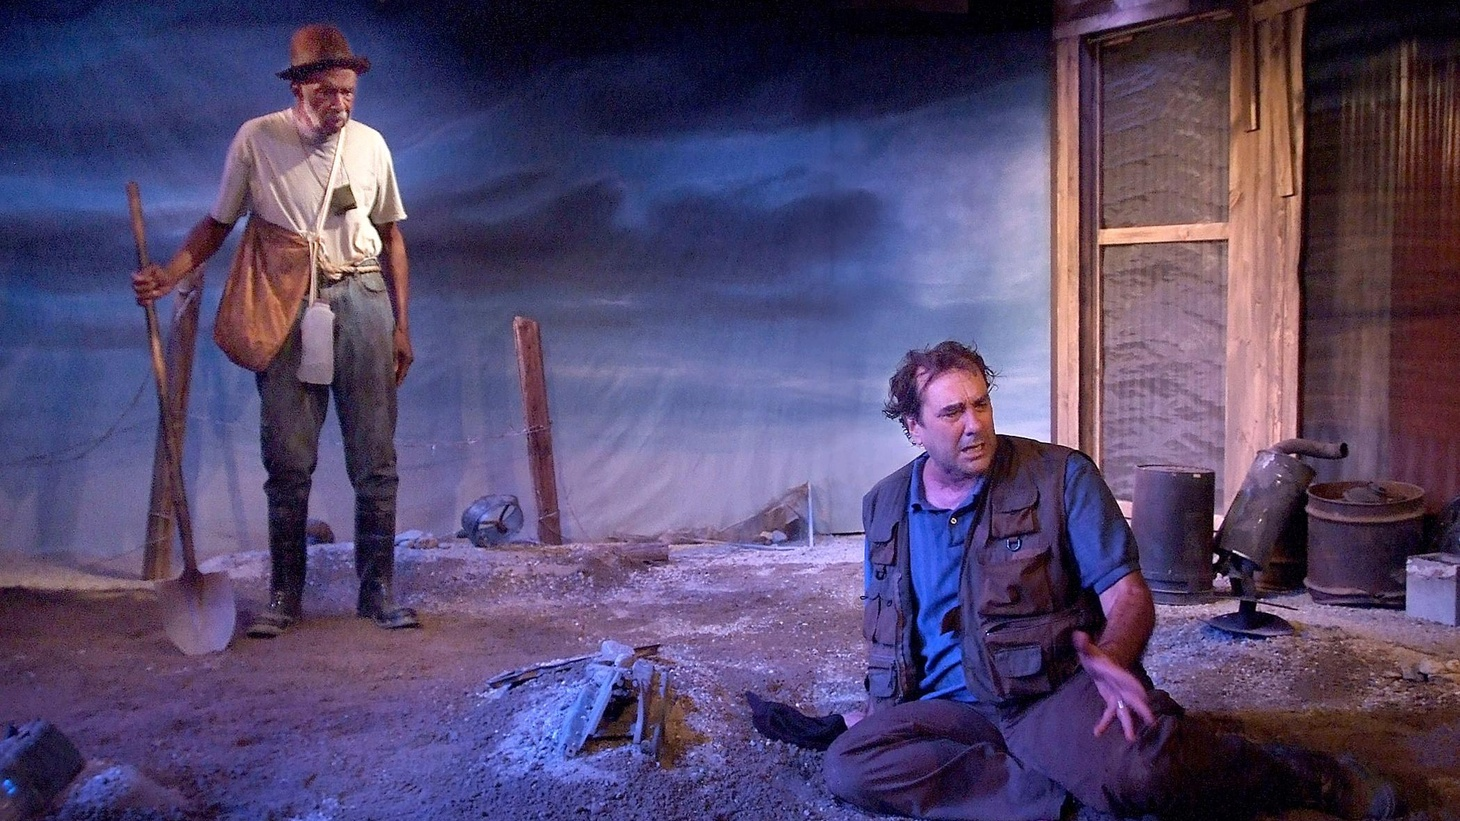 It's tricky. I'm realizing that my reviews end up having the same arc as the plays I see. Which makes this week tough because The Train Driver starts dark and stays there. Athol Fugard's latest work is based on a horrific true story...